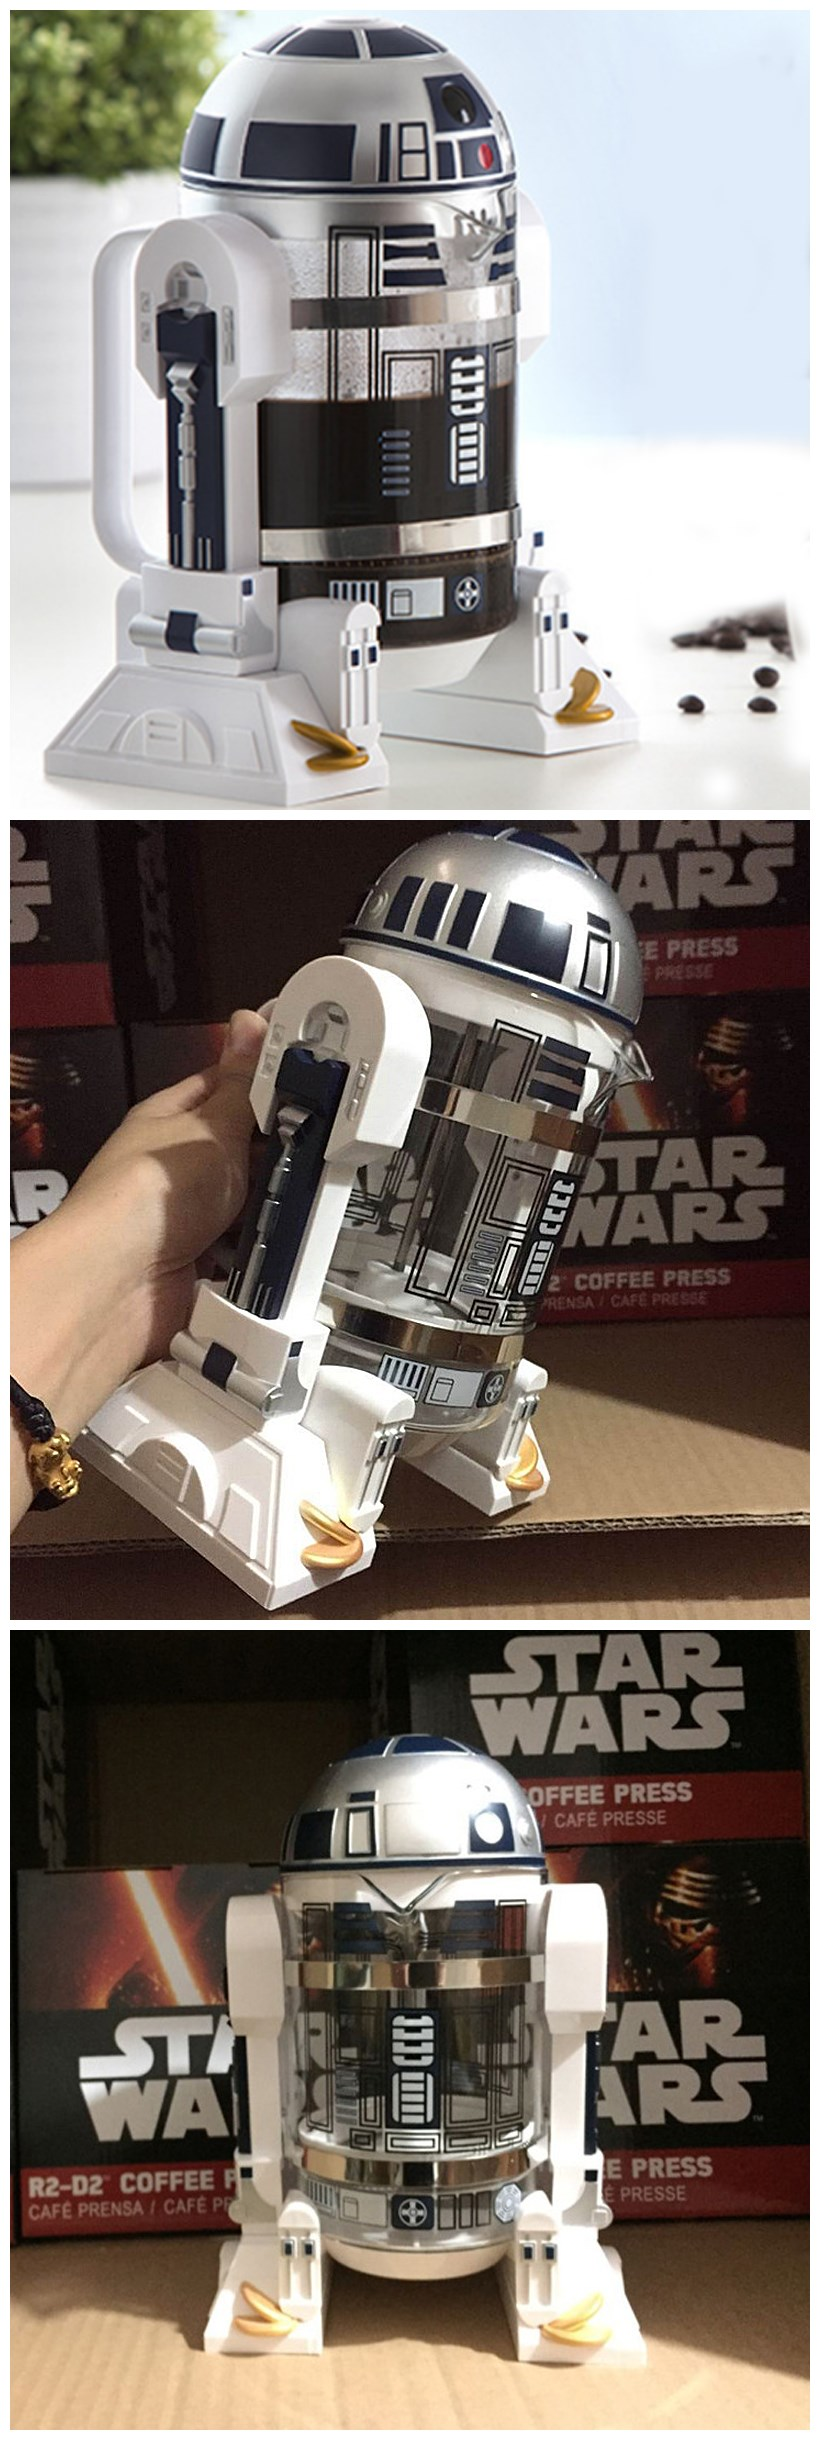 Star Wars R2-D2 Coffee Press (2)